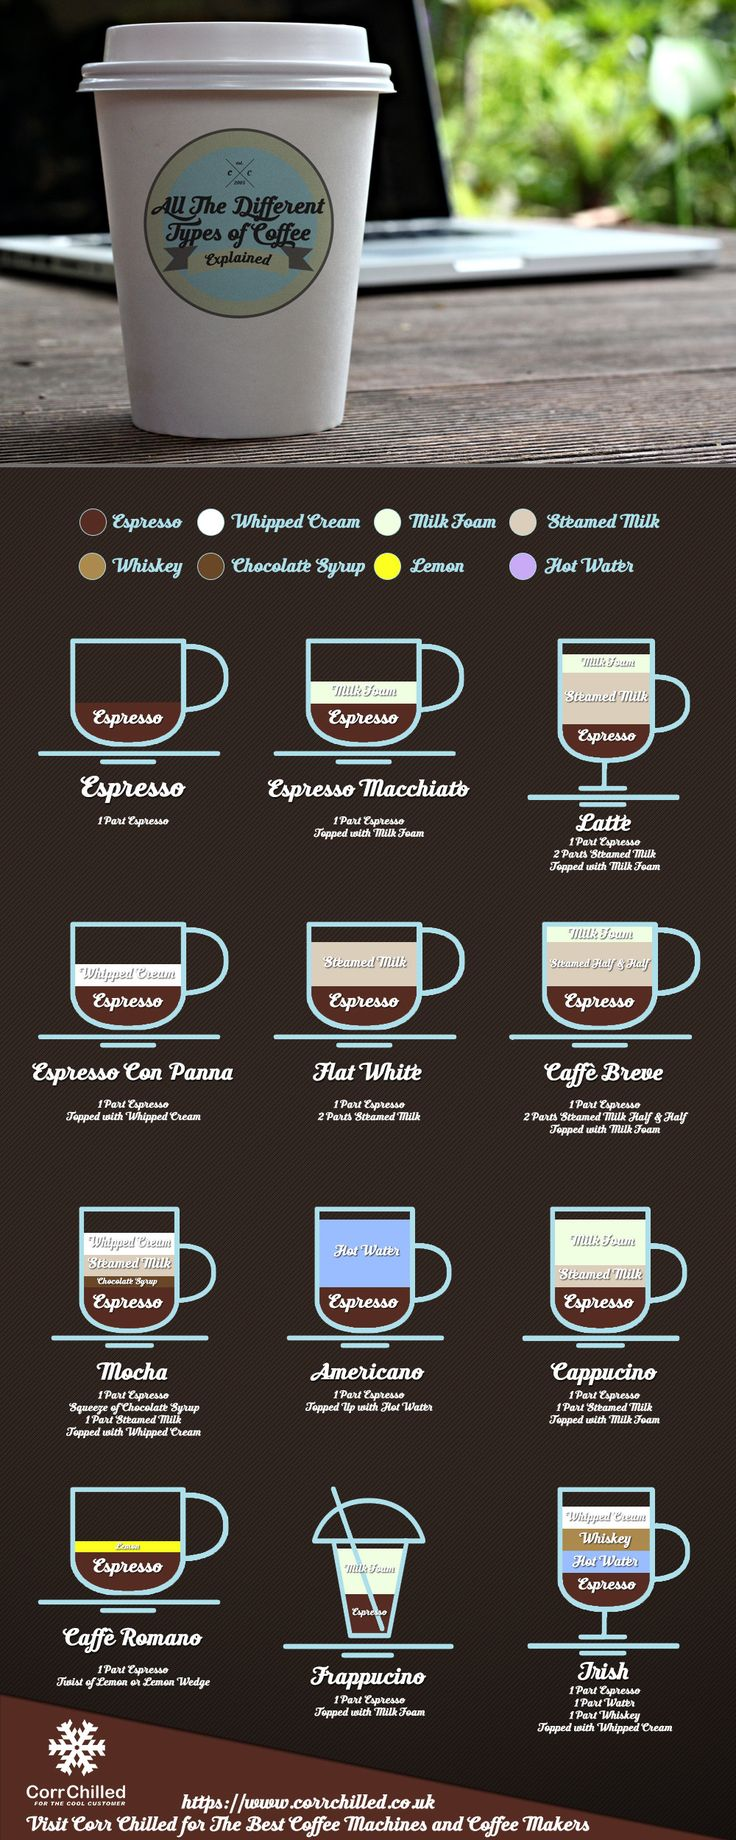 All the different types of coffee explained in a nice infographic - Imgur